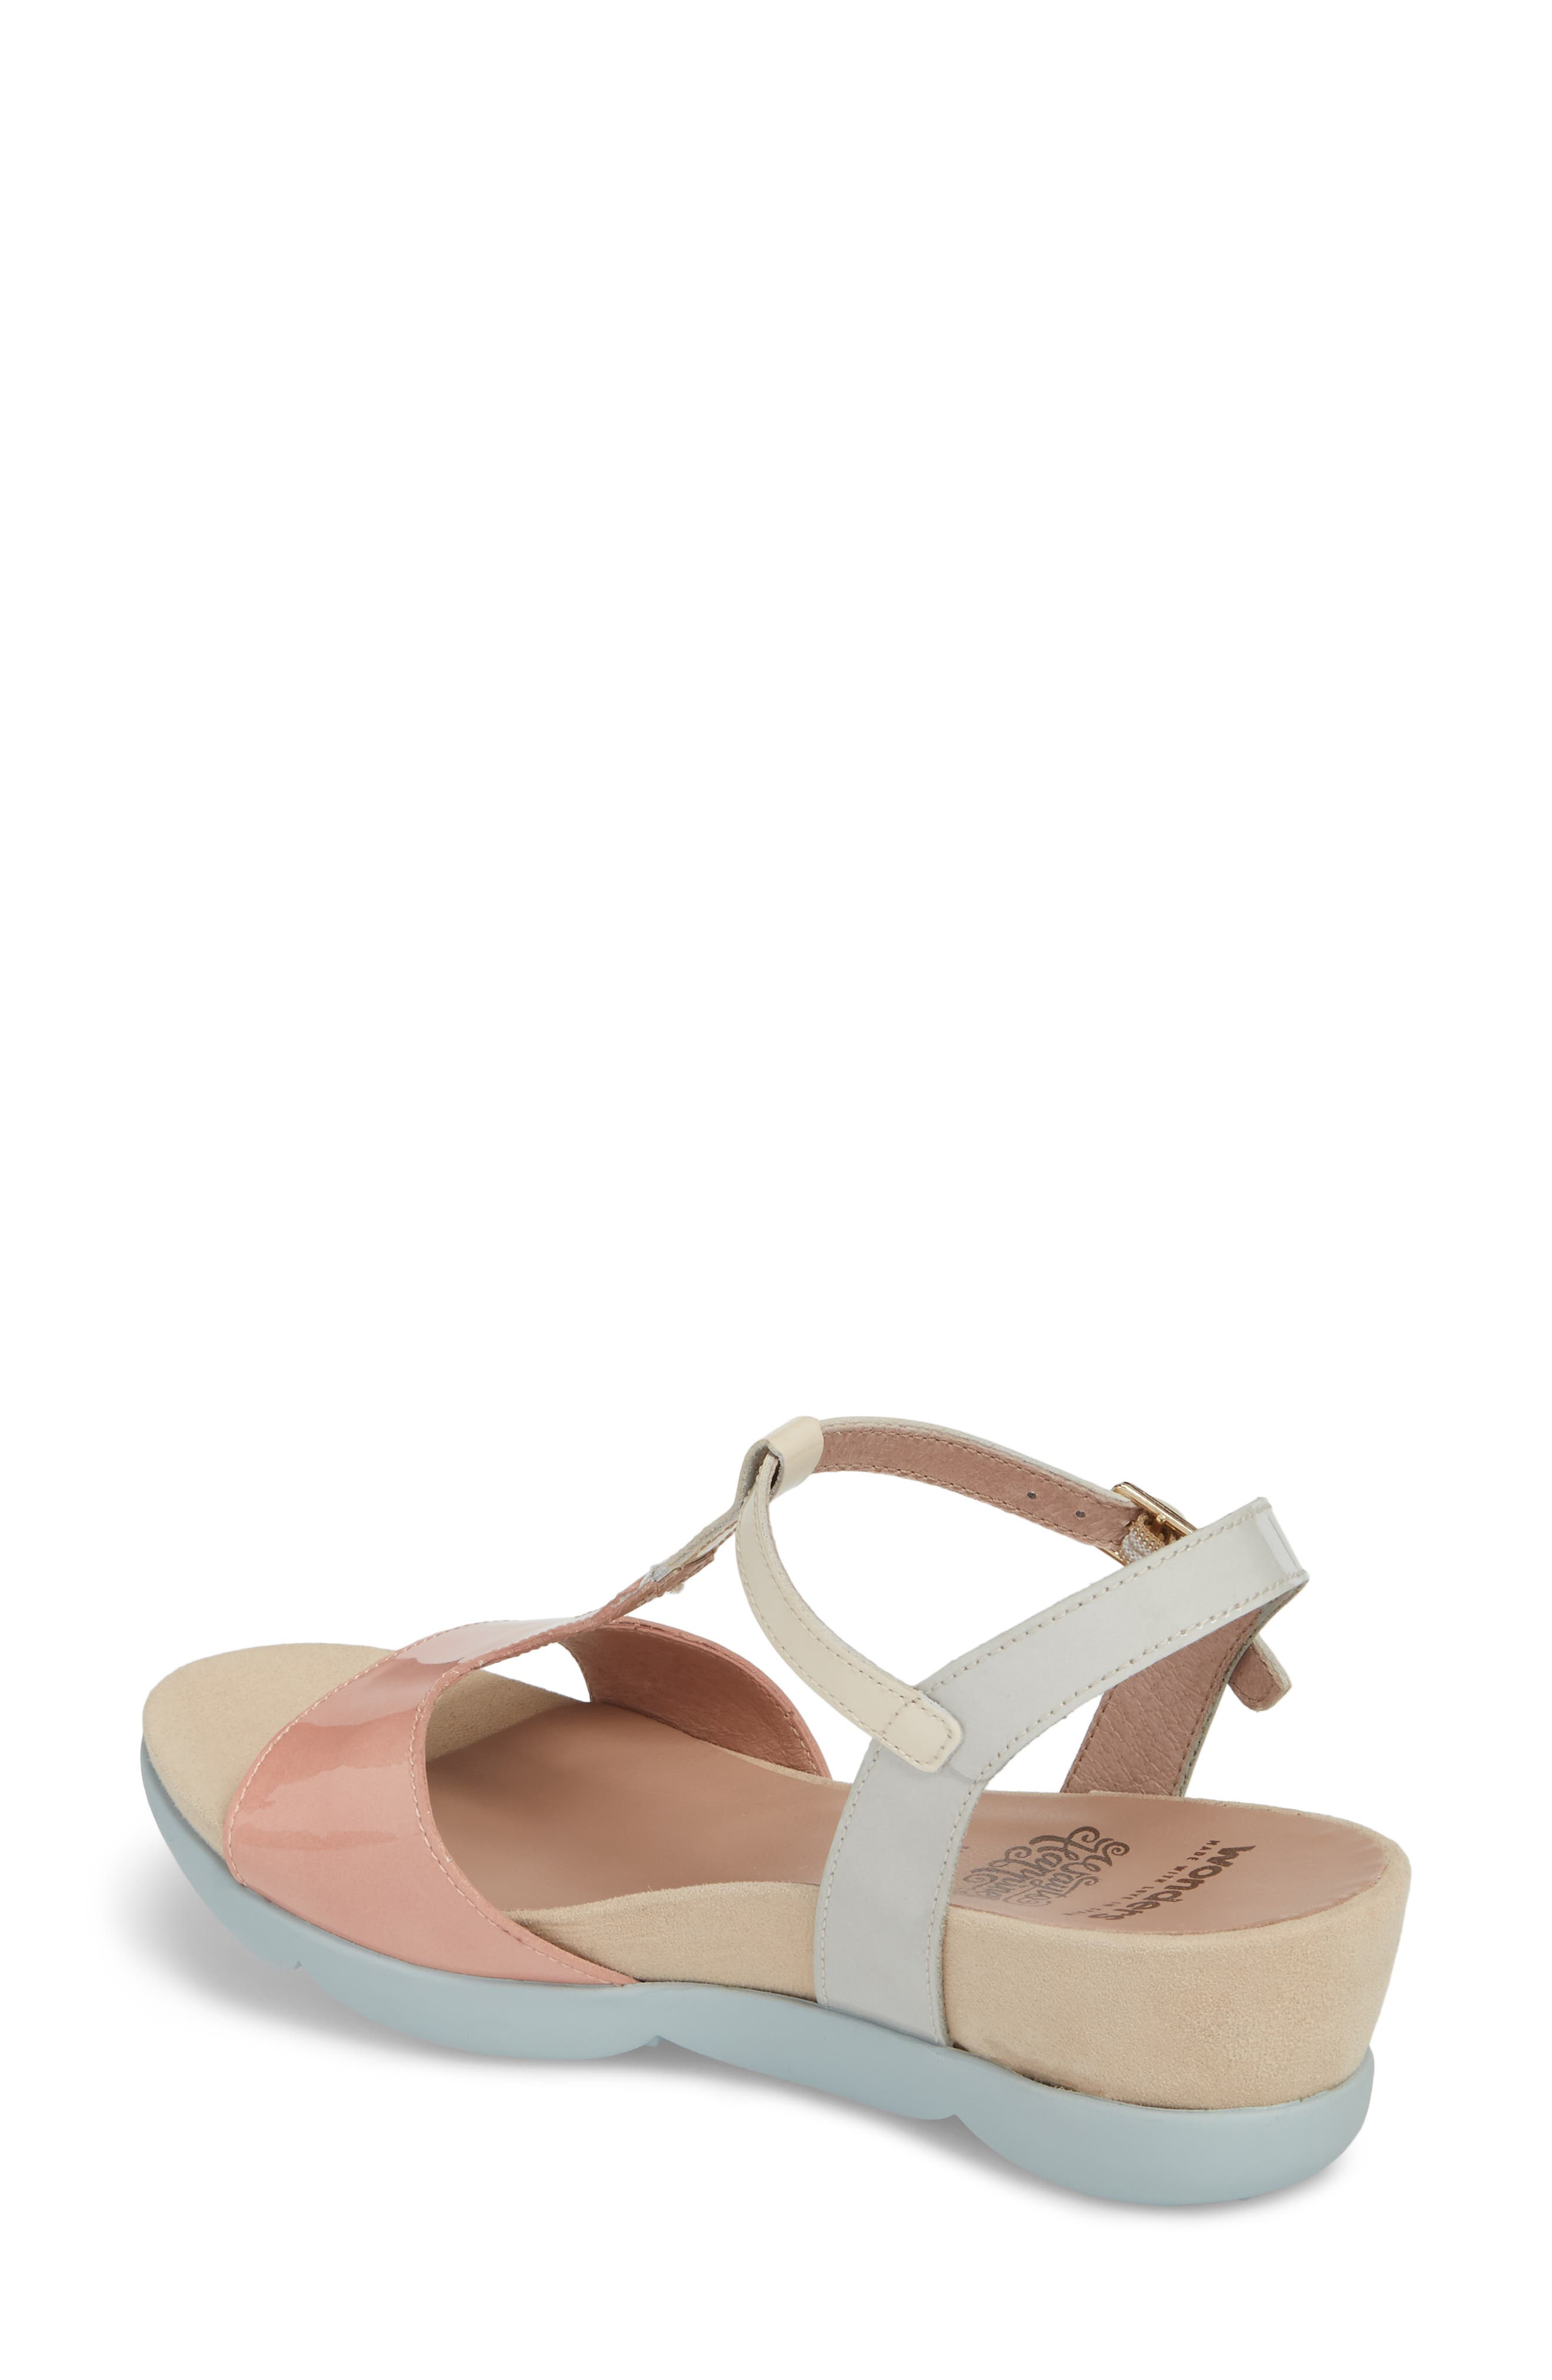 Wedge Sandal,                             Alternate thumbnail 2, color,                             Nude/ Off/ Light Grey Leather